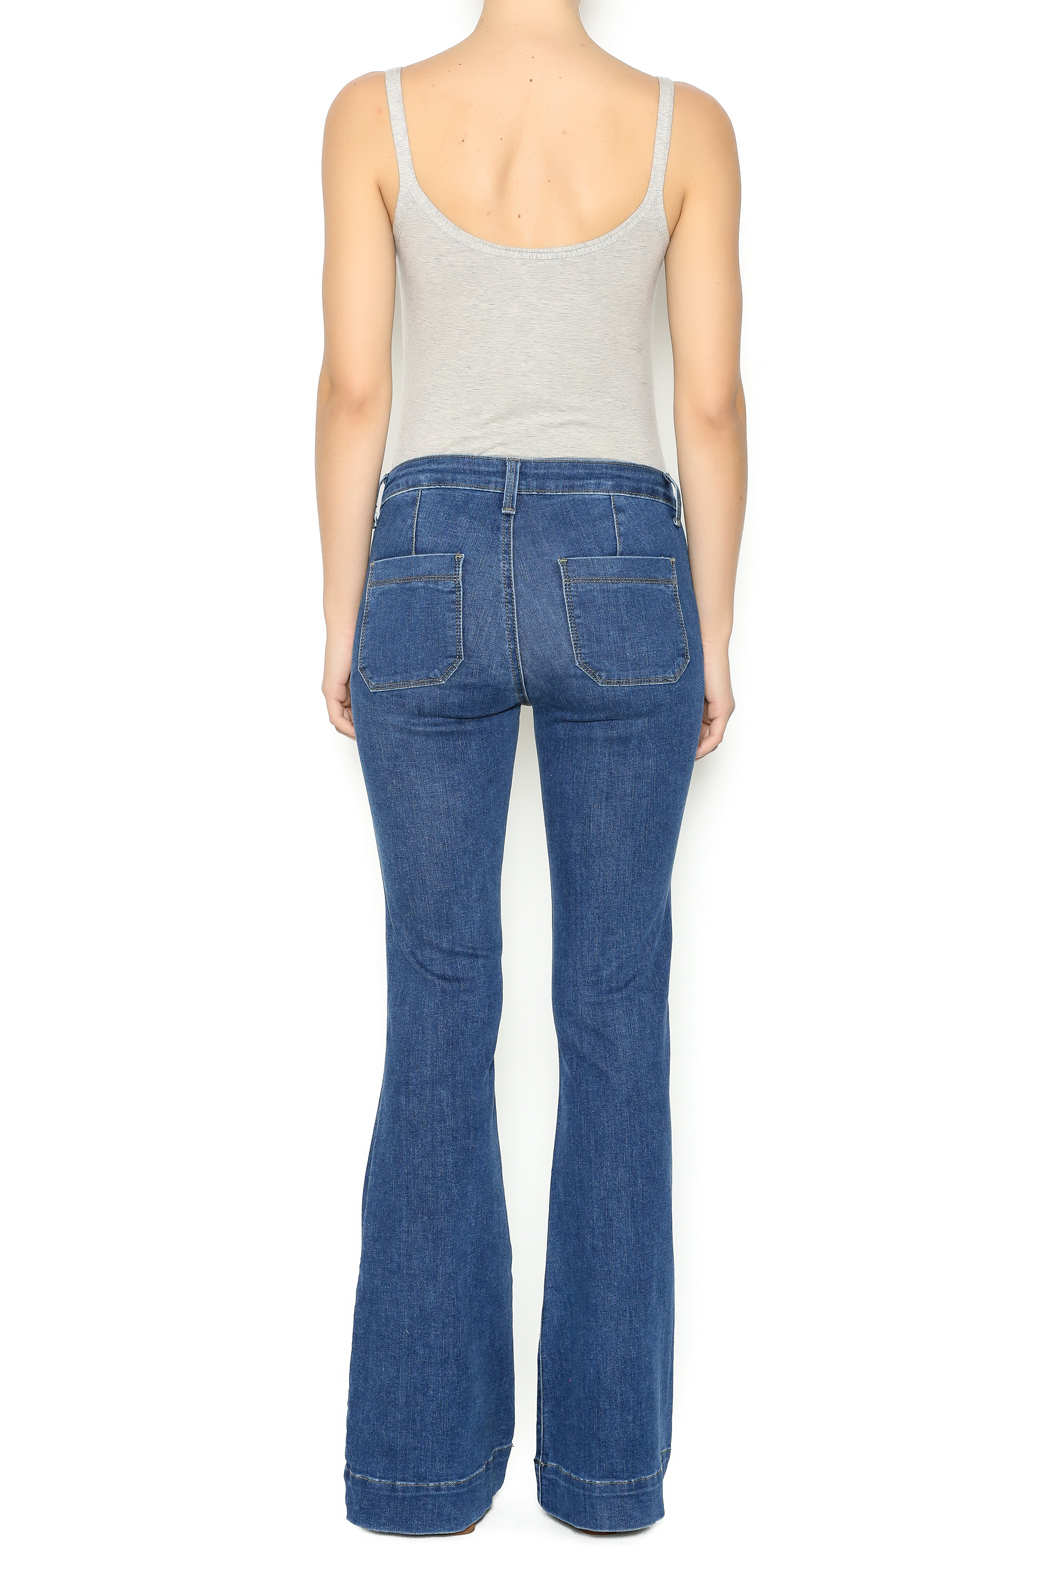 31517c0e227 Just Jeans Patch Pocket Flare Jeans from Boston by Hello Caroline ...